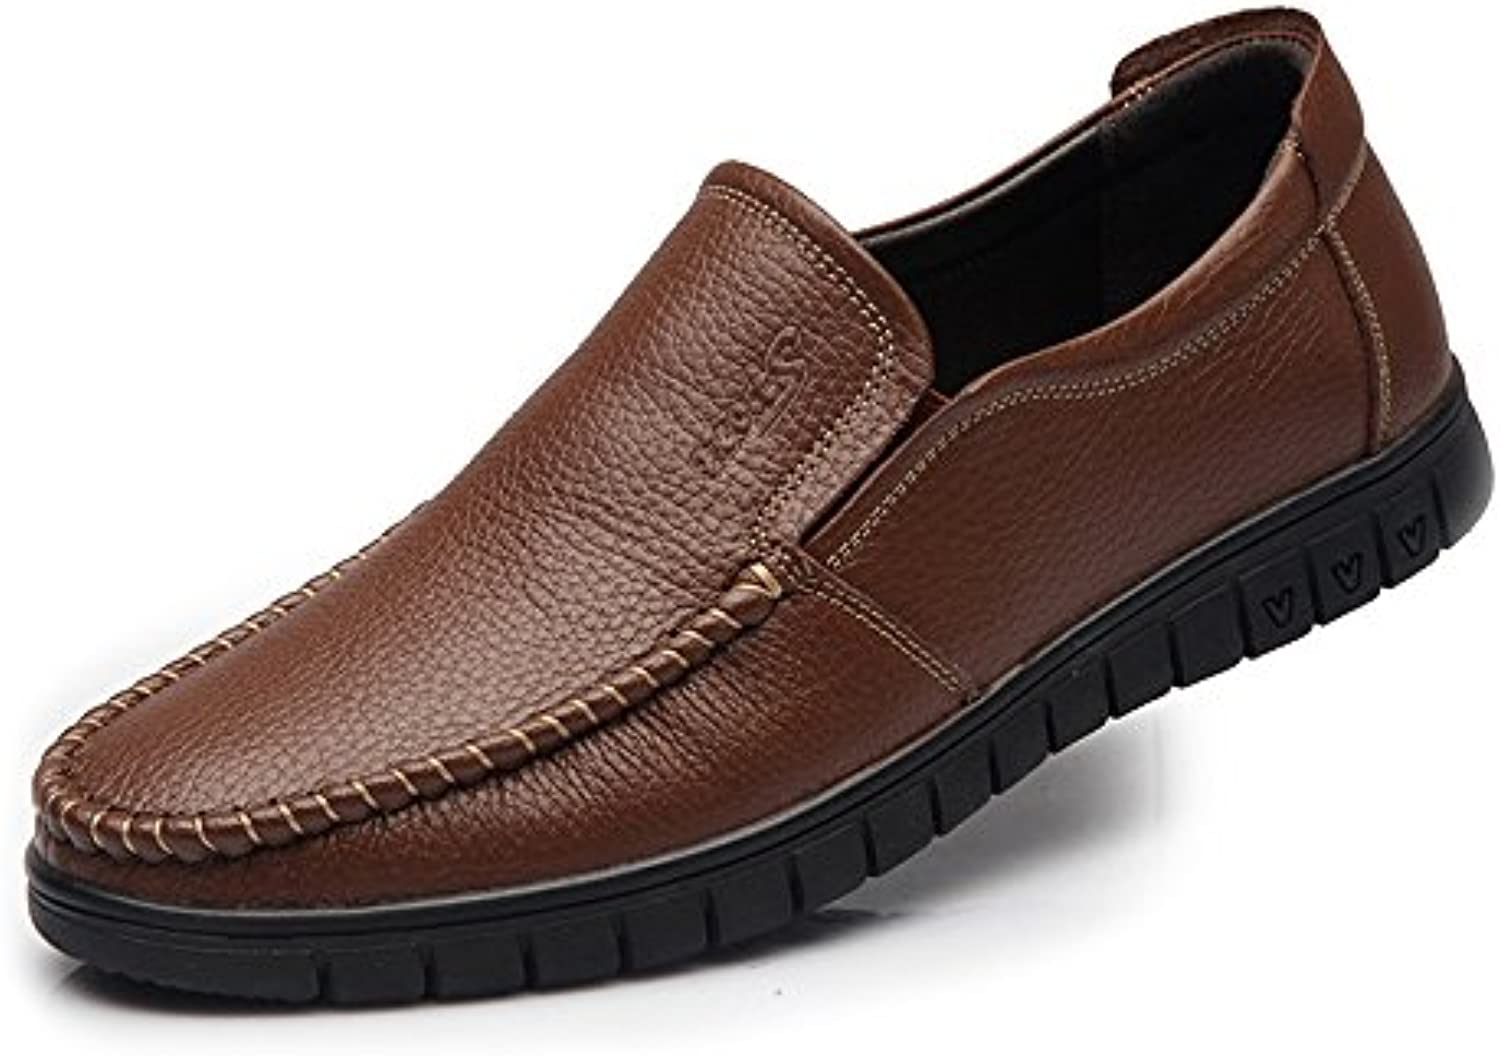 Jiuyue-shoes, Zapatos Slip On Loafer para Hombre Oxfords Formales Soft Outsoles Large Size,Zapatos Oxford Hombre...